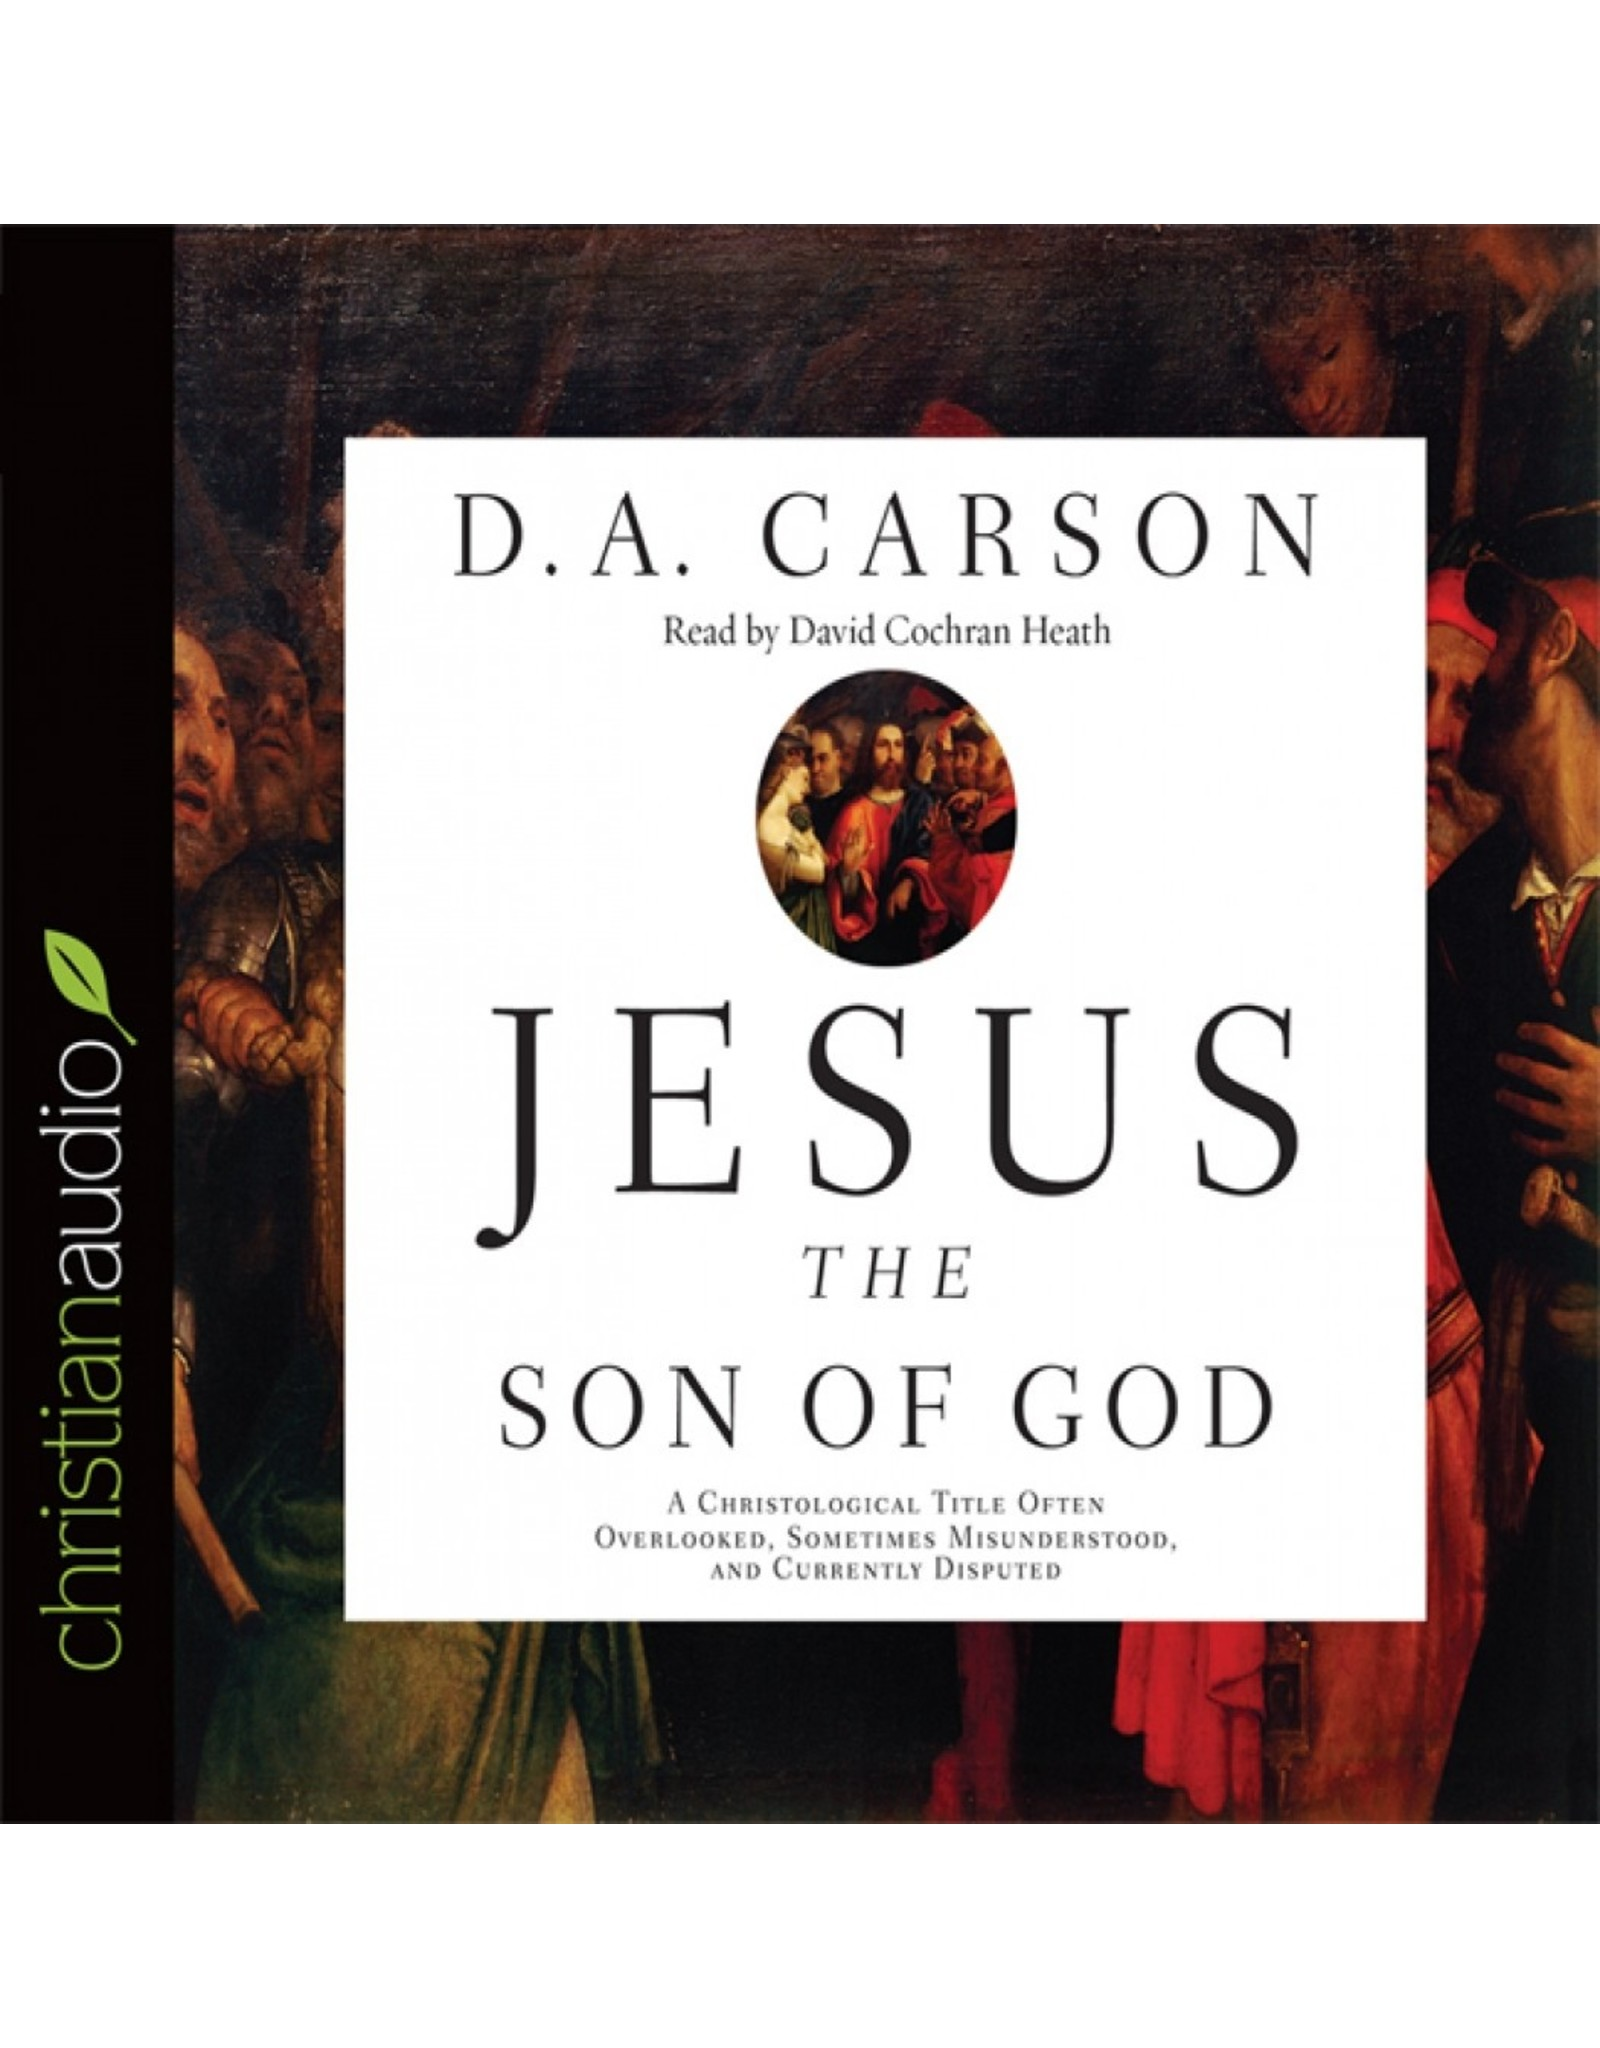 Jesus the Son of God: A Christological Title Often Overlooked, Sometimes Misunderstood, and Currently Disputed (Audio CD)